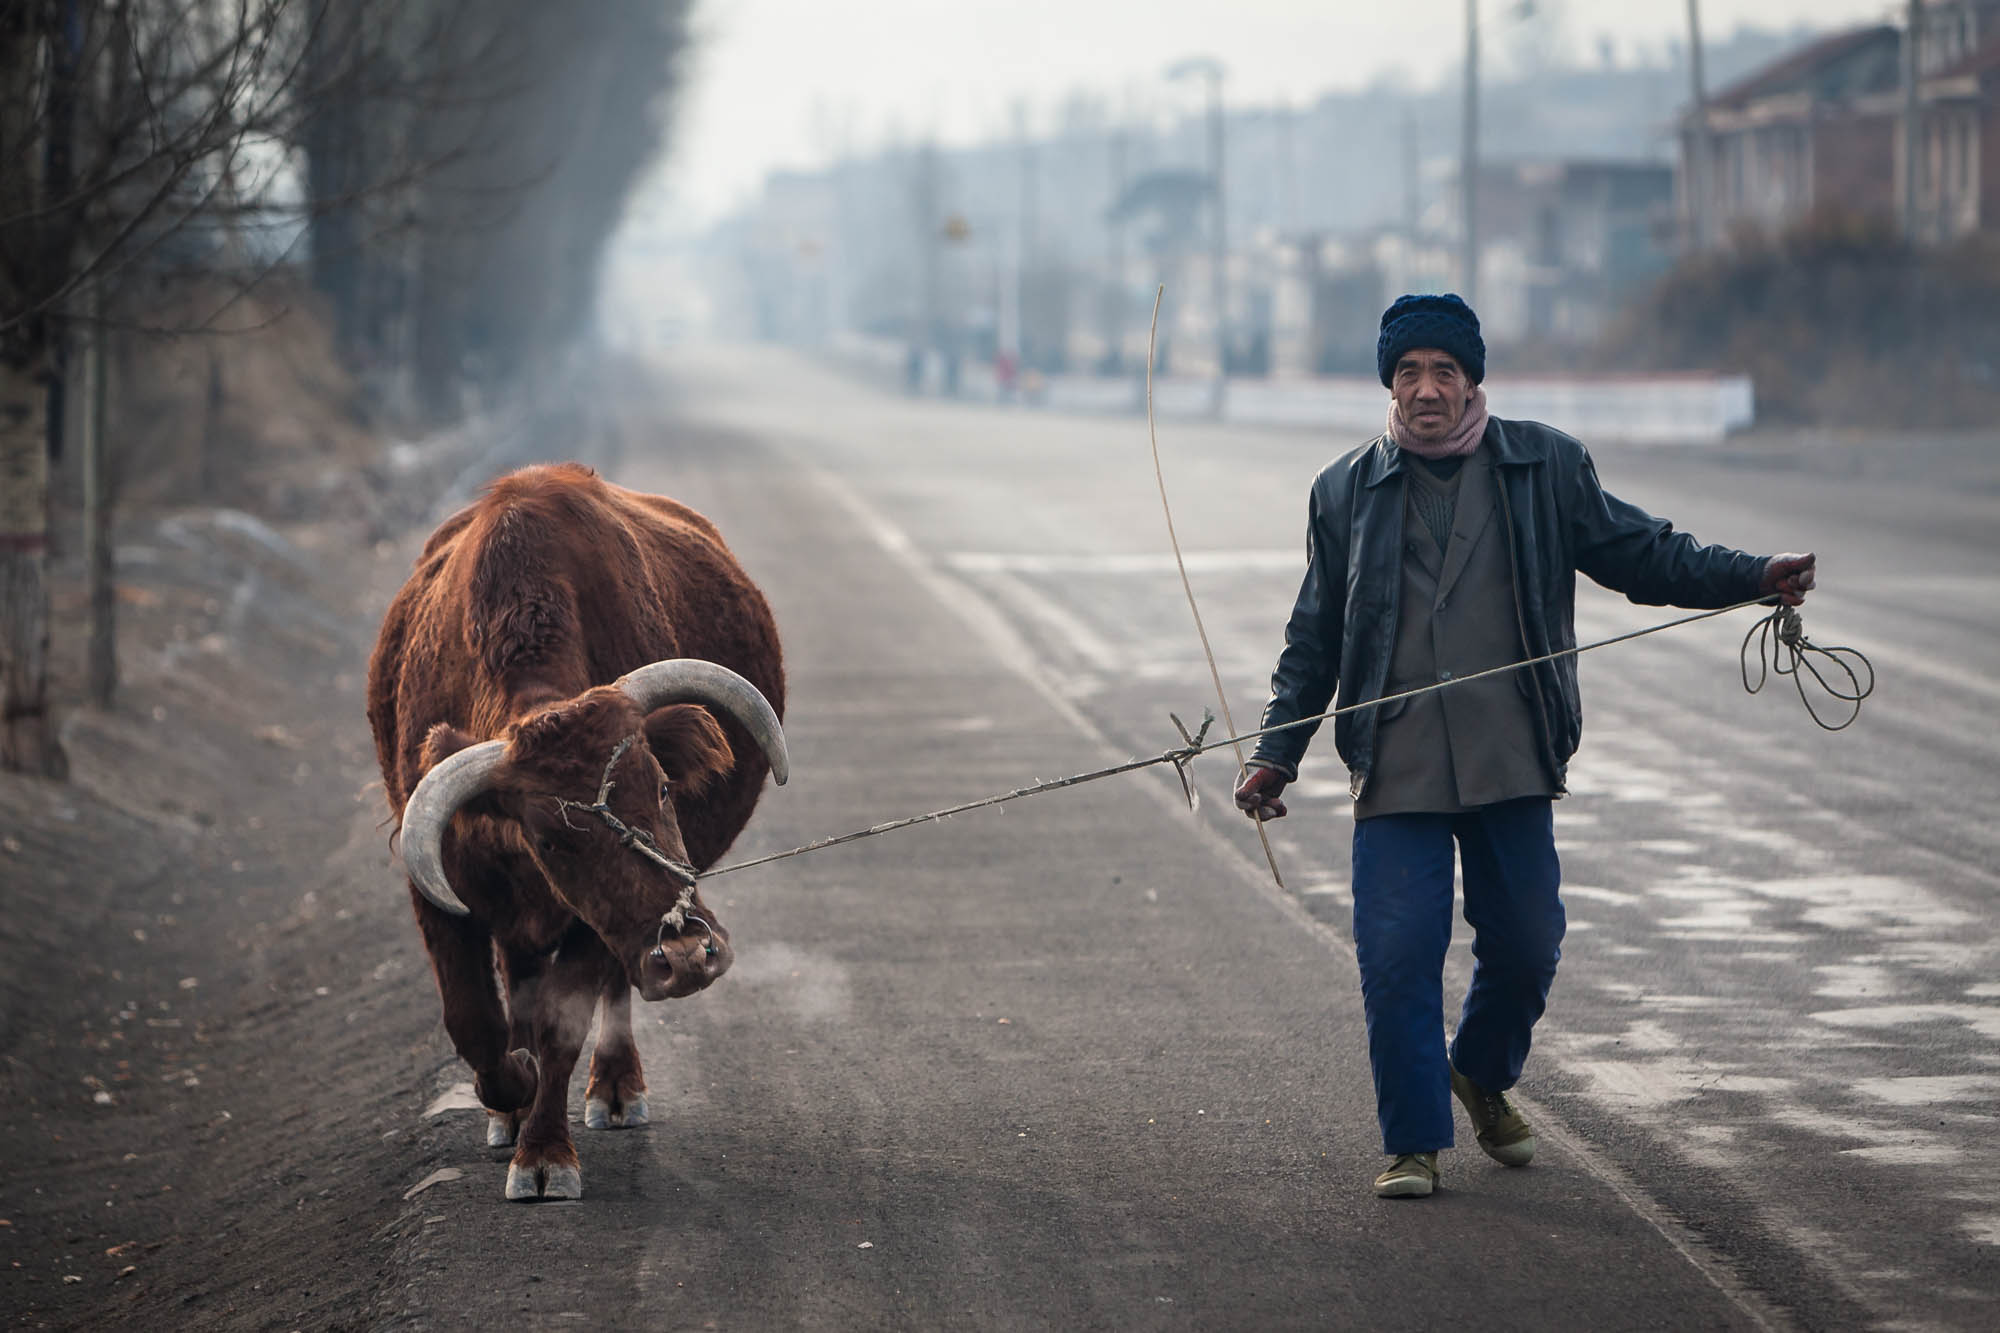 encounter on a country road